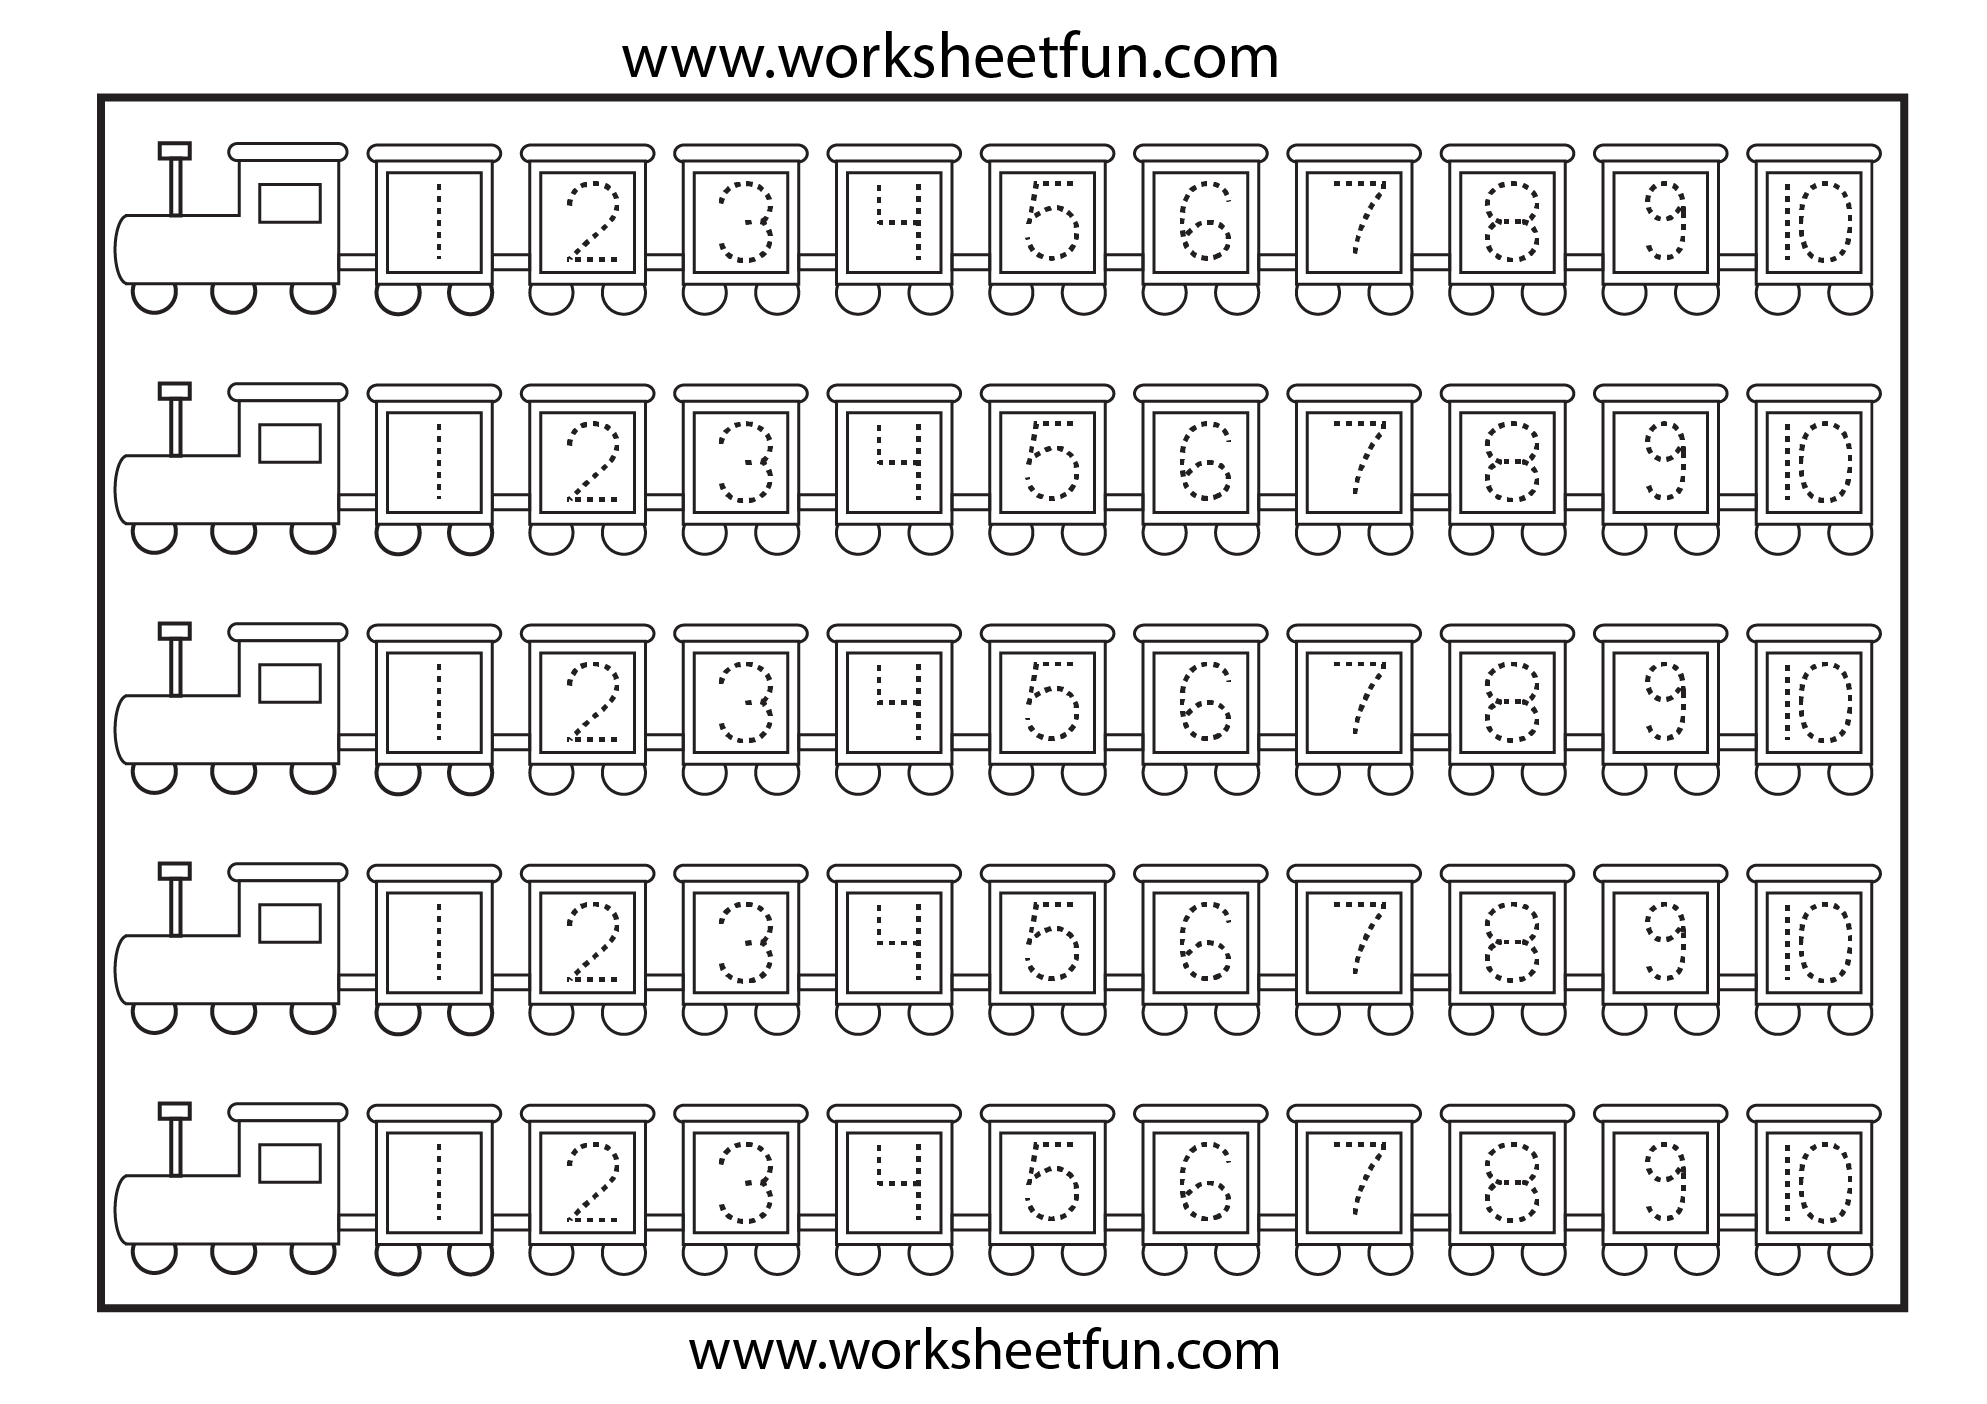 Number Tracing 4 Worksheets Free Printable Worksheets Worksheetfun